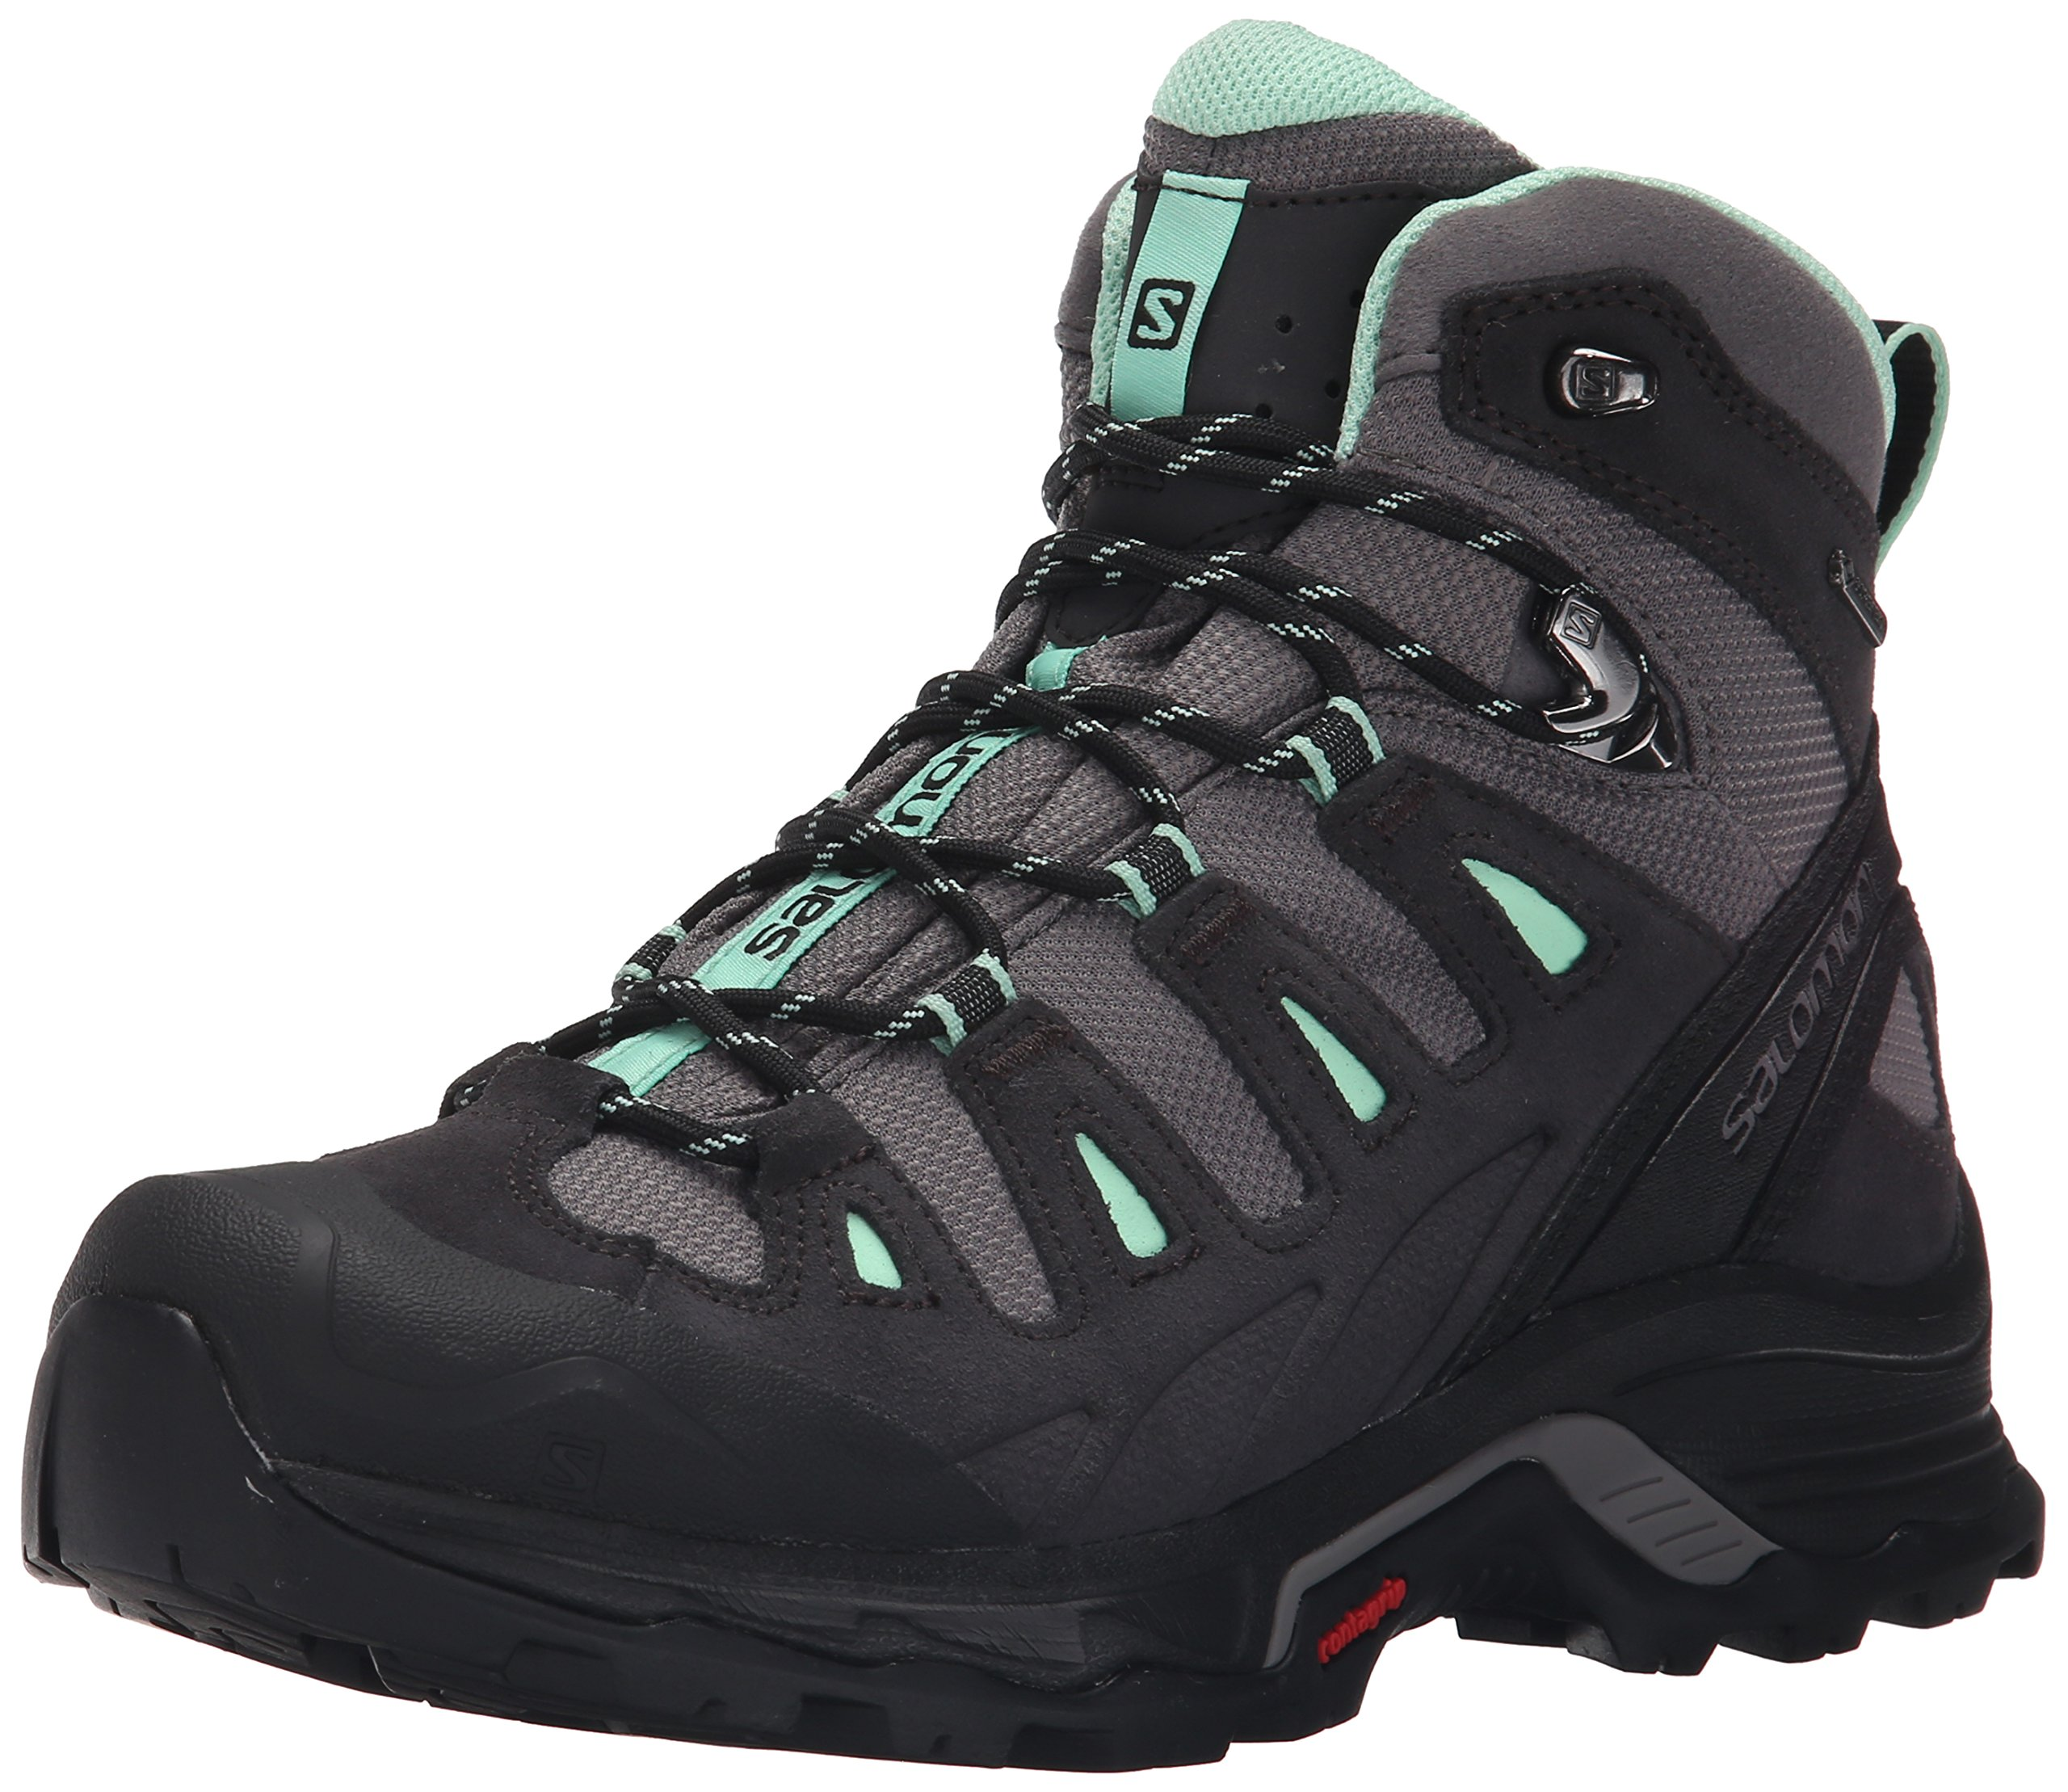 Salomon Women's Quest Prime Gtx W Backpacking Boot, Detroit/Asphalt/Lucite Green, 8 M US